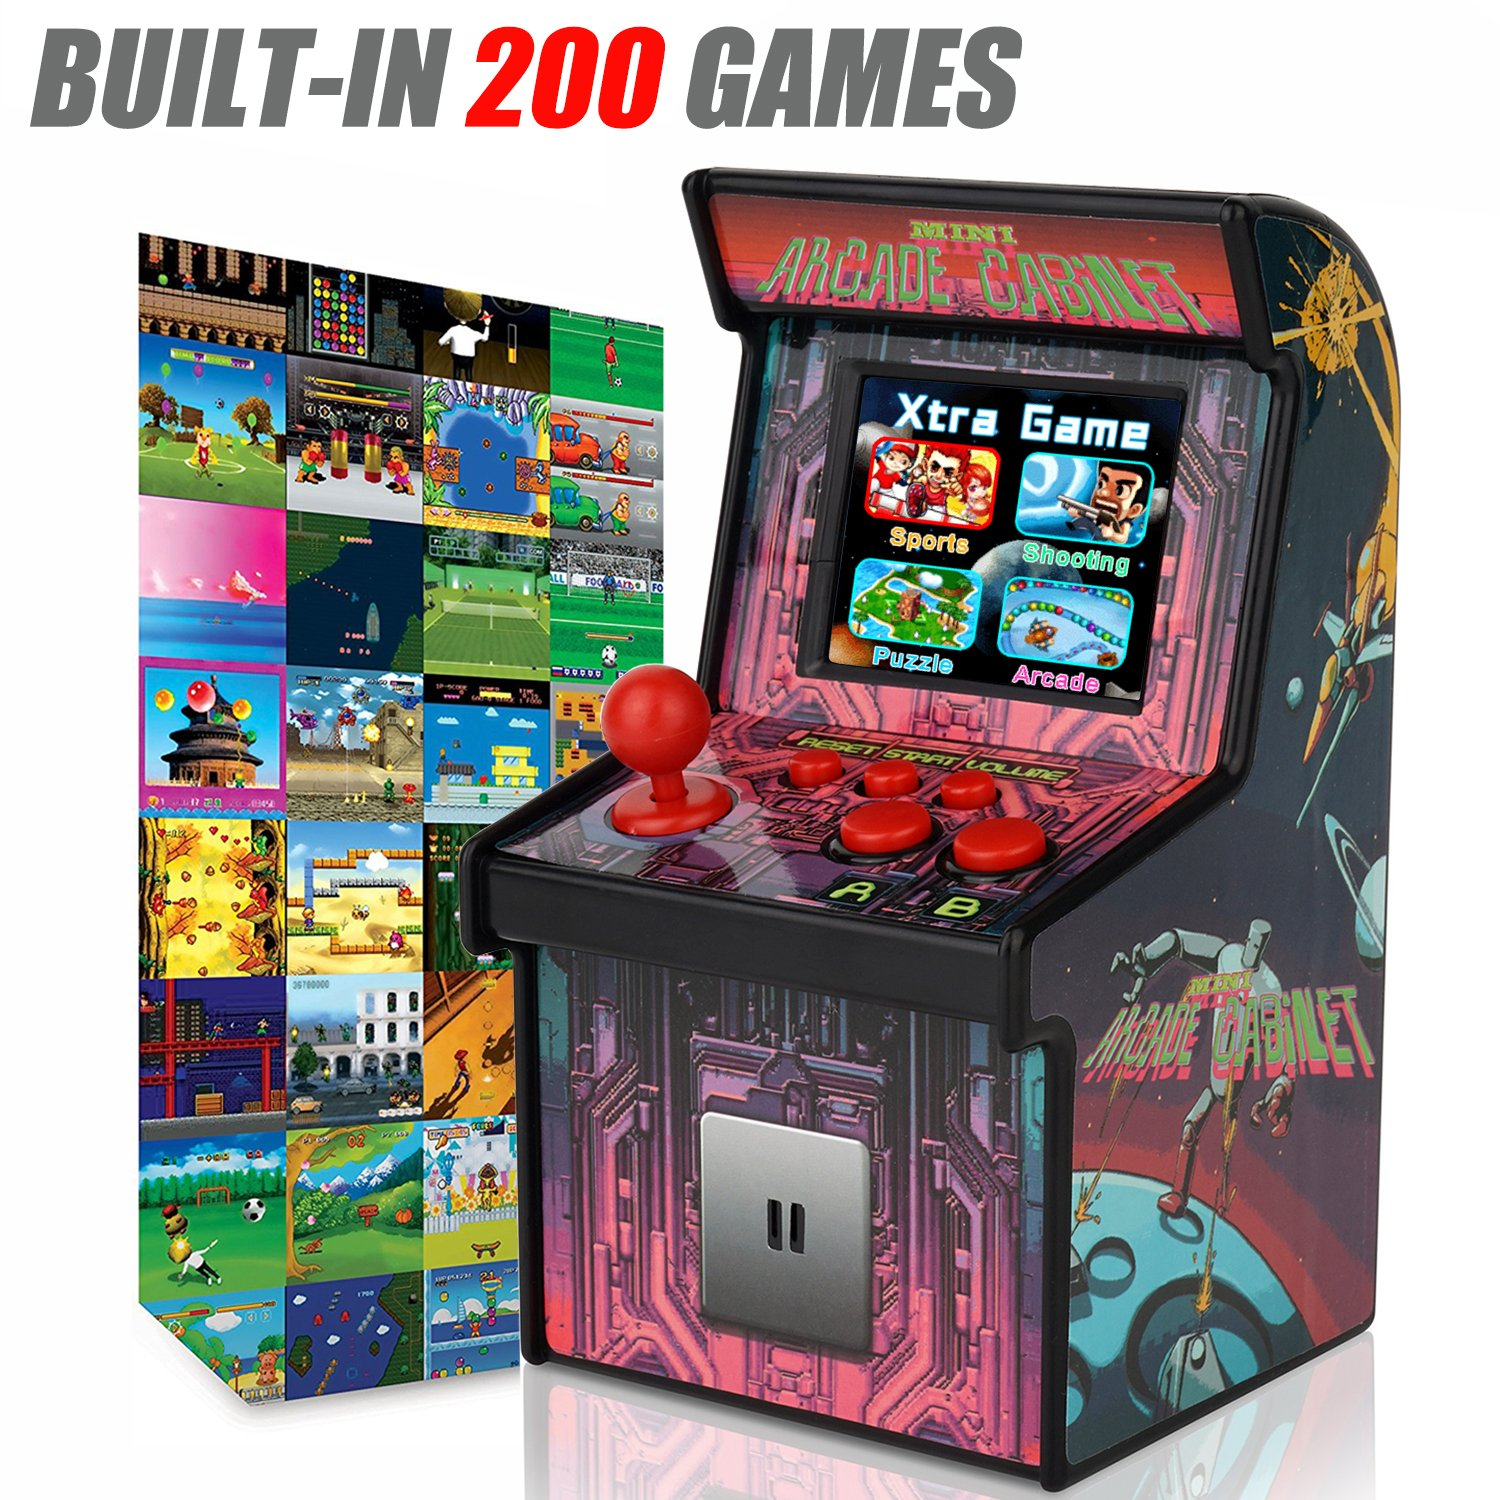 Kidaily Mini Arcade Game Retro Machines with 200 Built-in Video Games for Kids Classic Memories Handheld Games Home Travel Portable Childrens Teens Toys Novelty Electronics